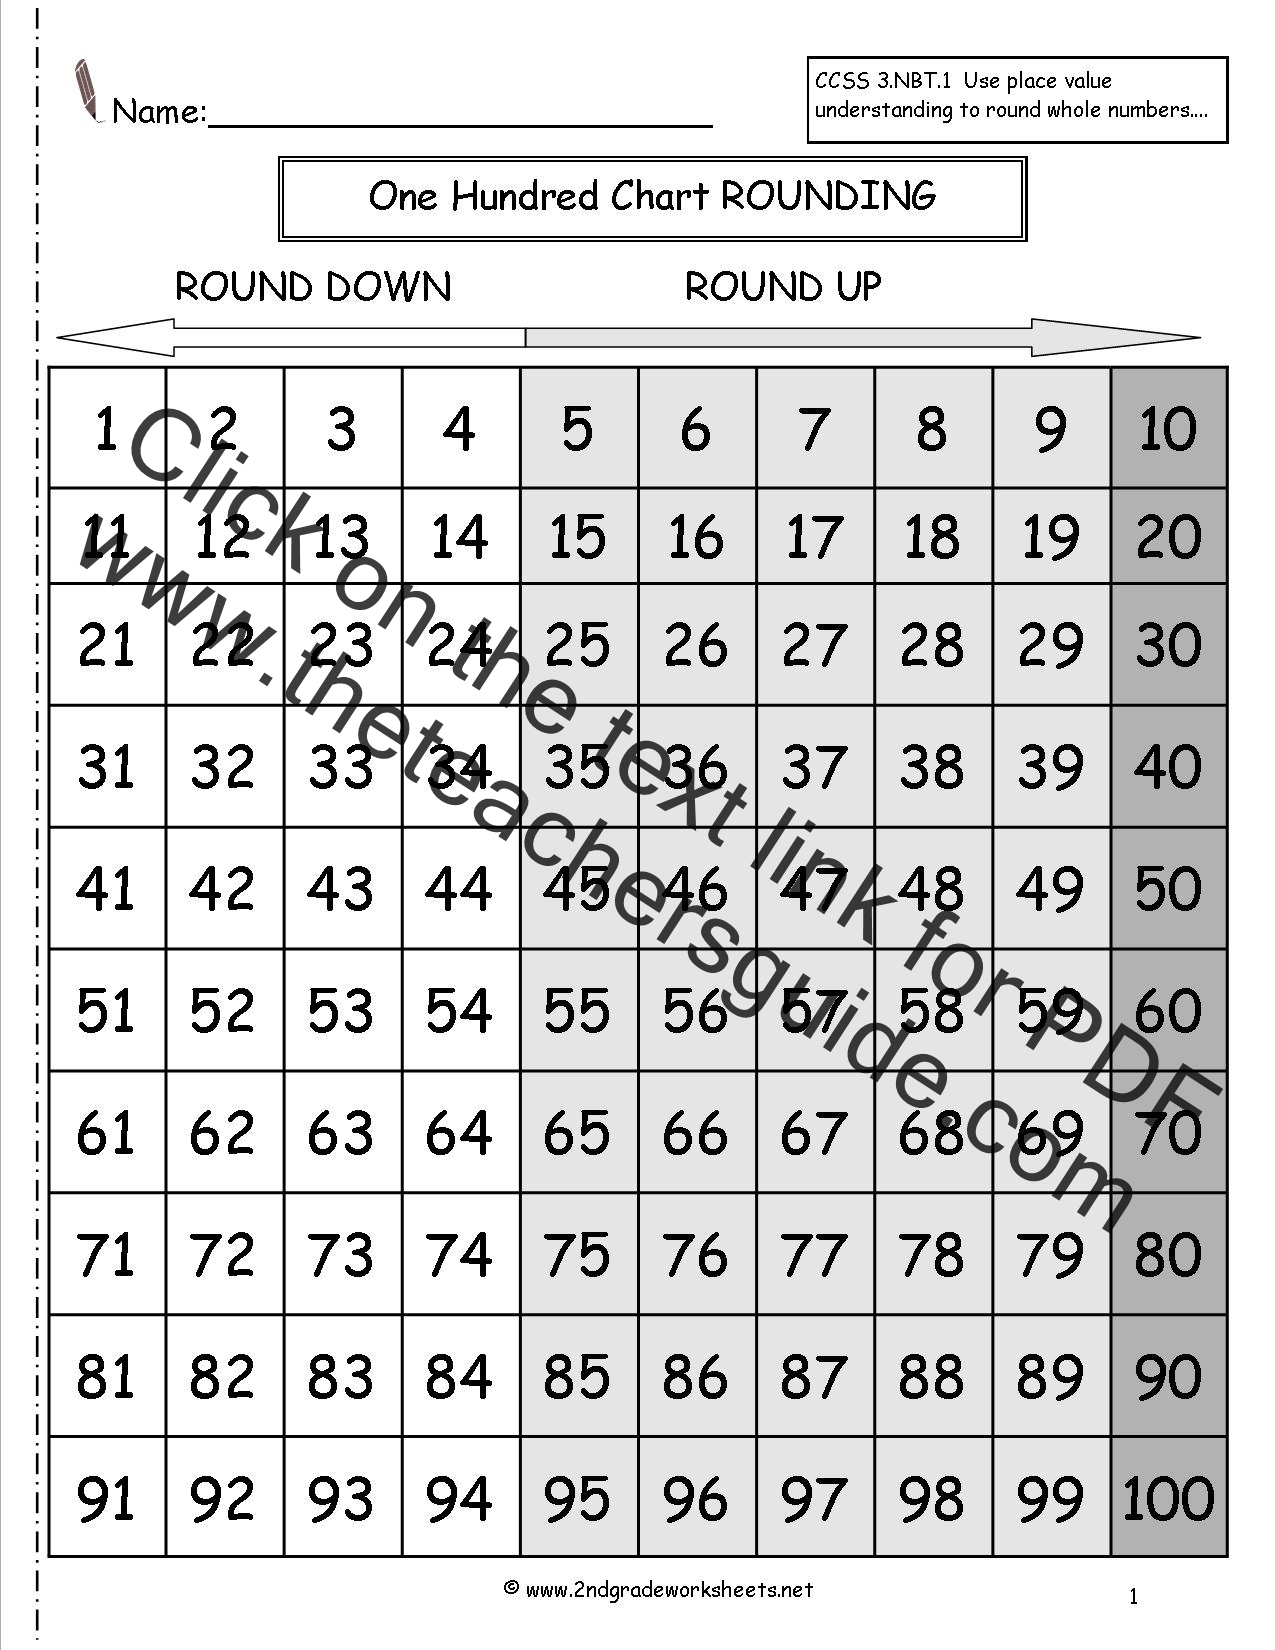 hight resolution of Free Math Worksheets And Printouts 100 Commonly Misspelled Words Worksheet  - LowGif